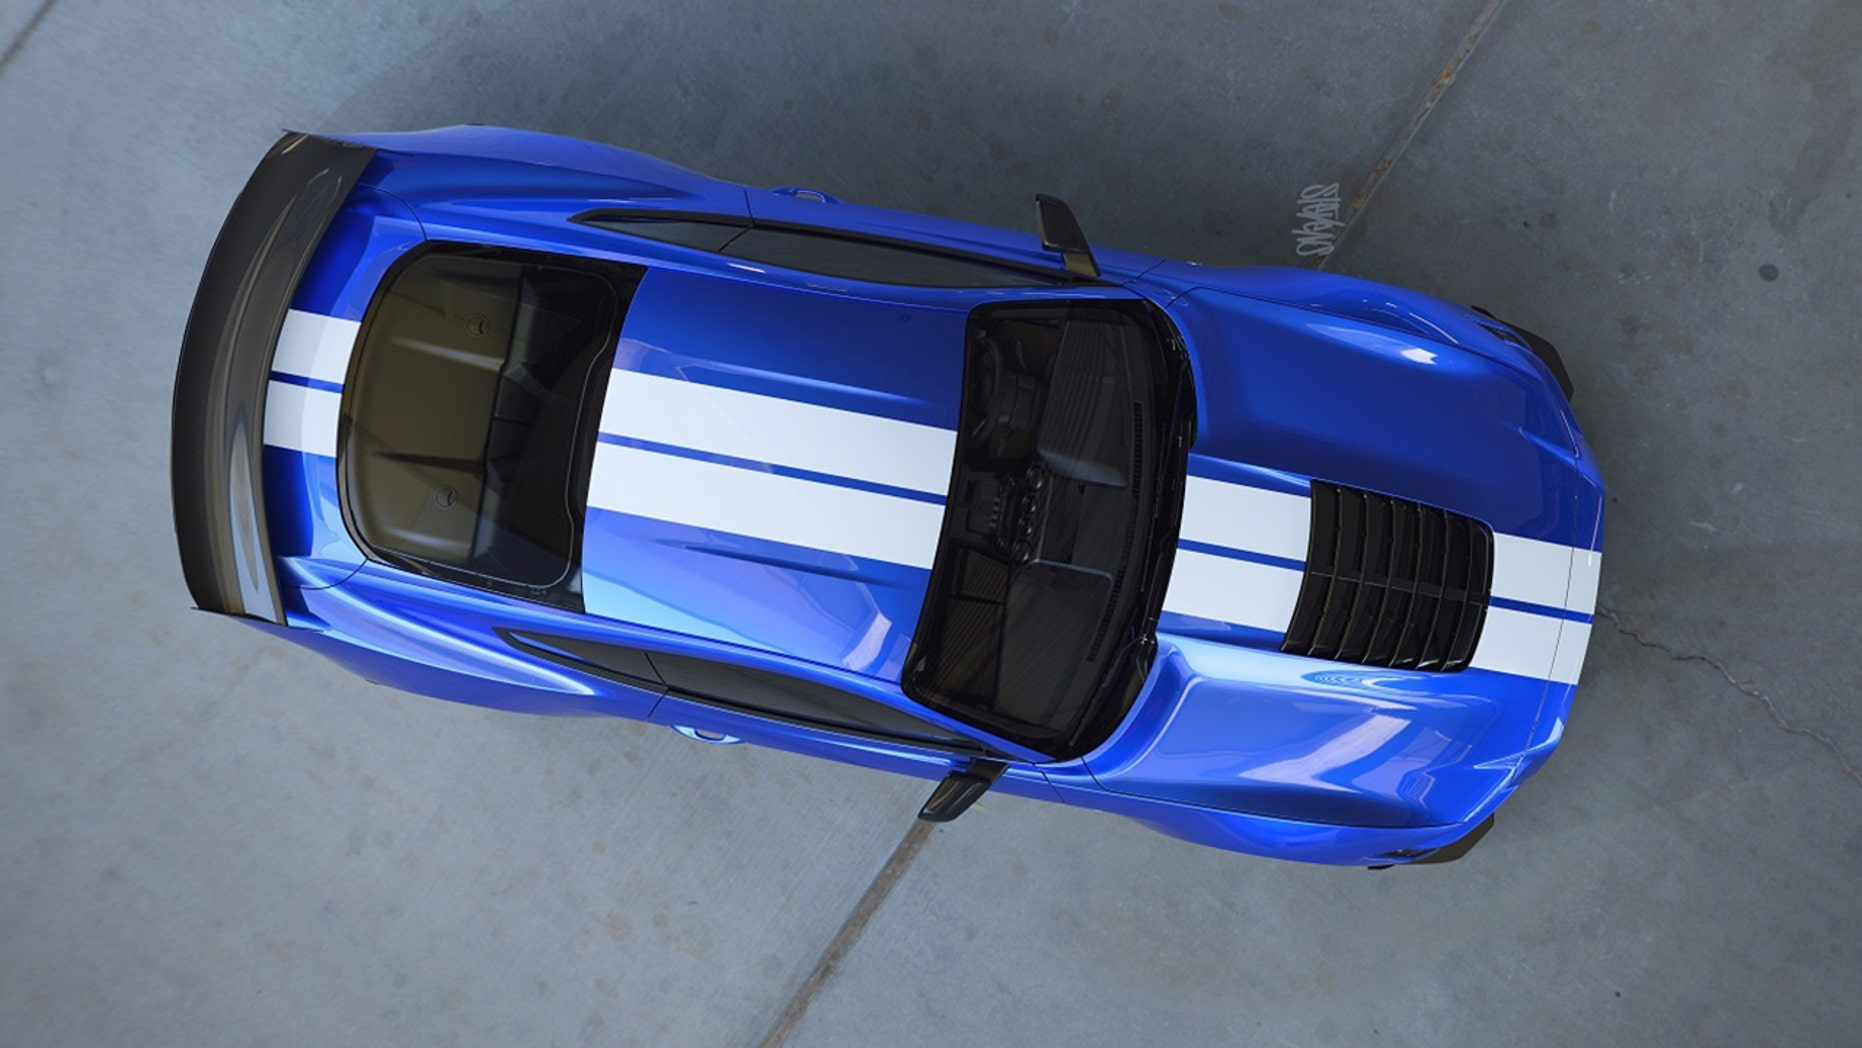 Ford mustang shelby gt500 leaked and dealers told four door mustang is in the works reports say